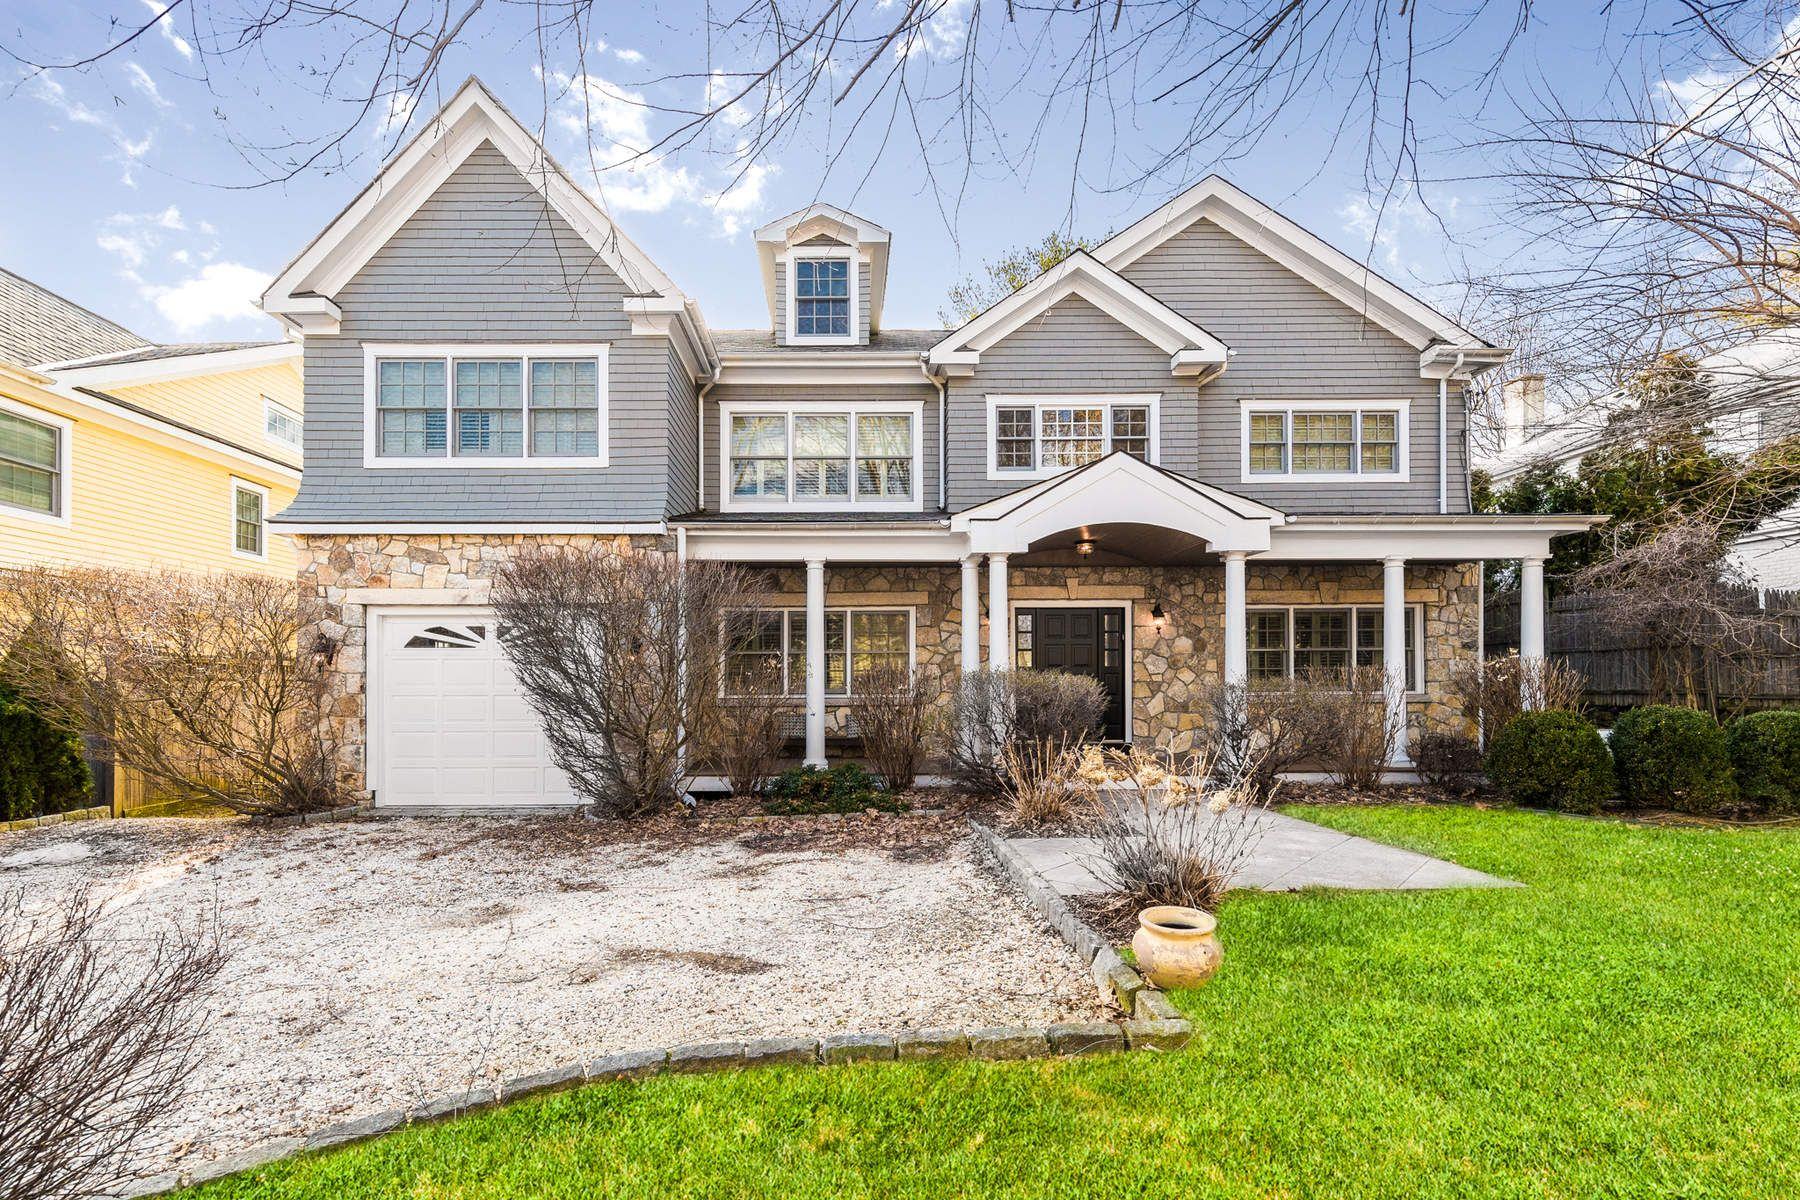 Single Family Home for Sale at 56 Havemeyer Lane Old Greenwich, Connecticut, 06870 United States